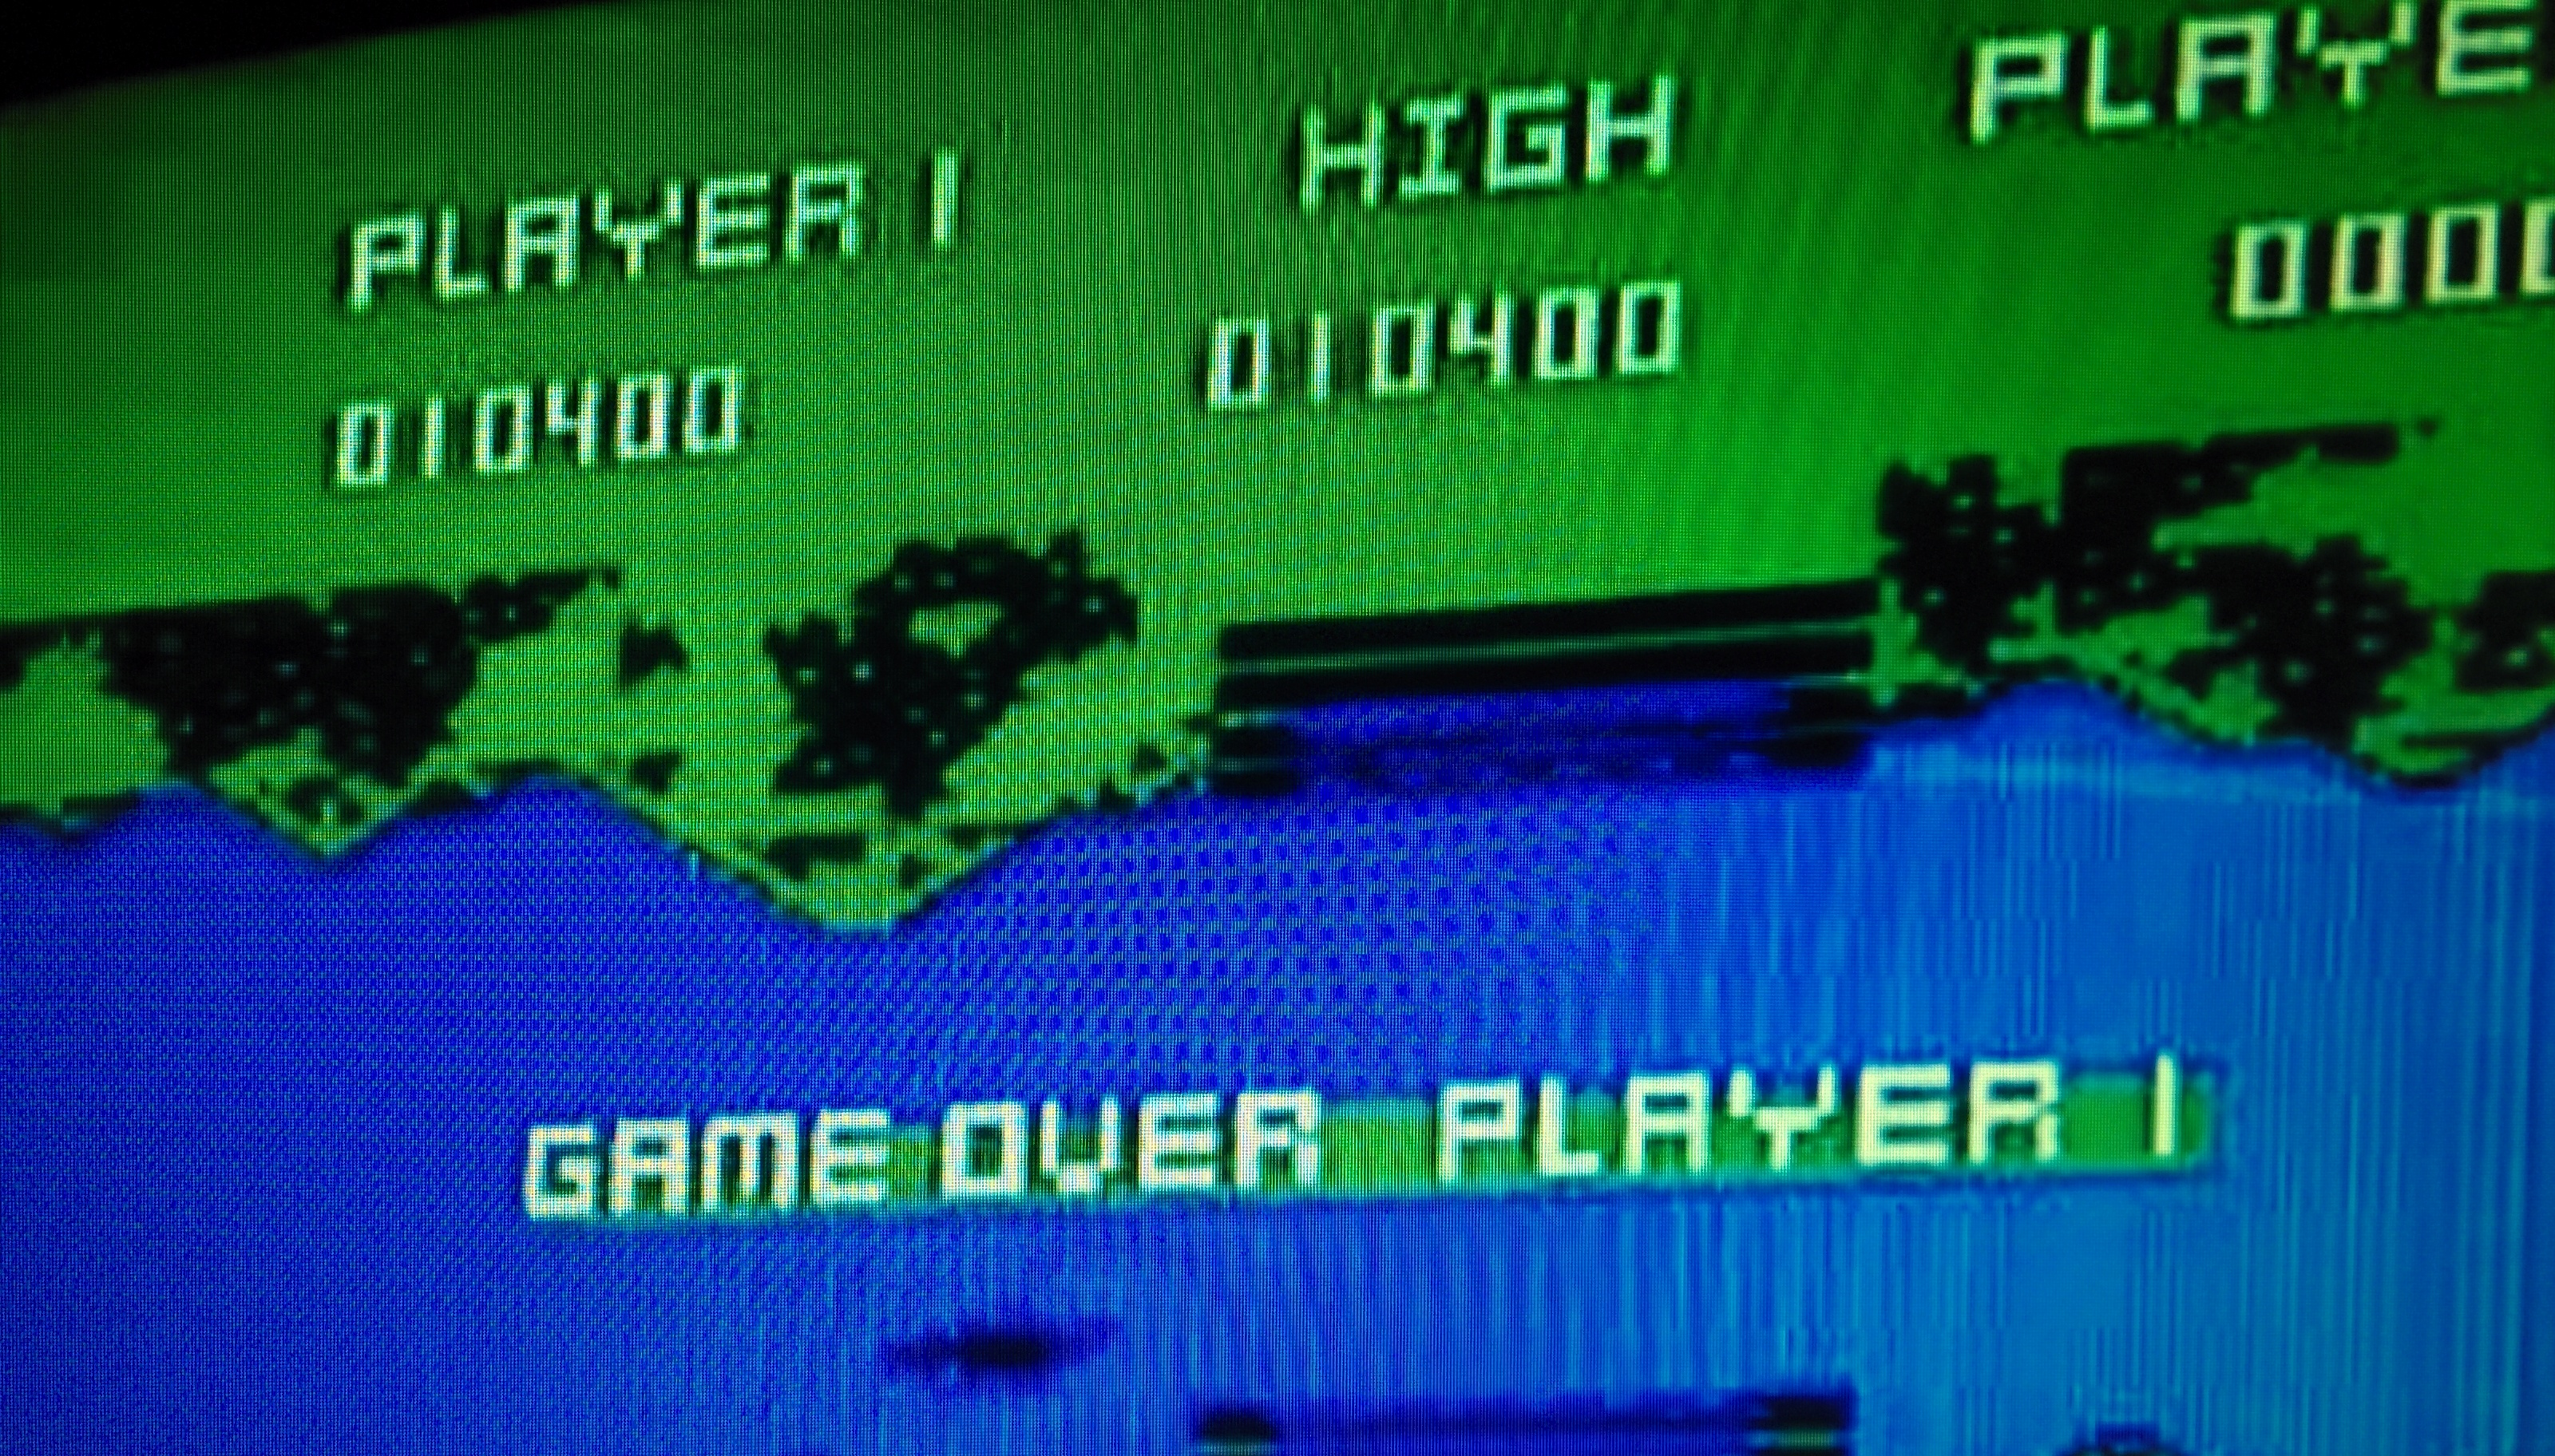 Sixx: River Resque (Atari 400/800/XL/XE Emulated) 10,400 points on 2014-10-23 09:51:49